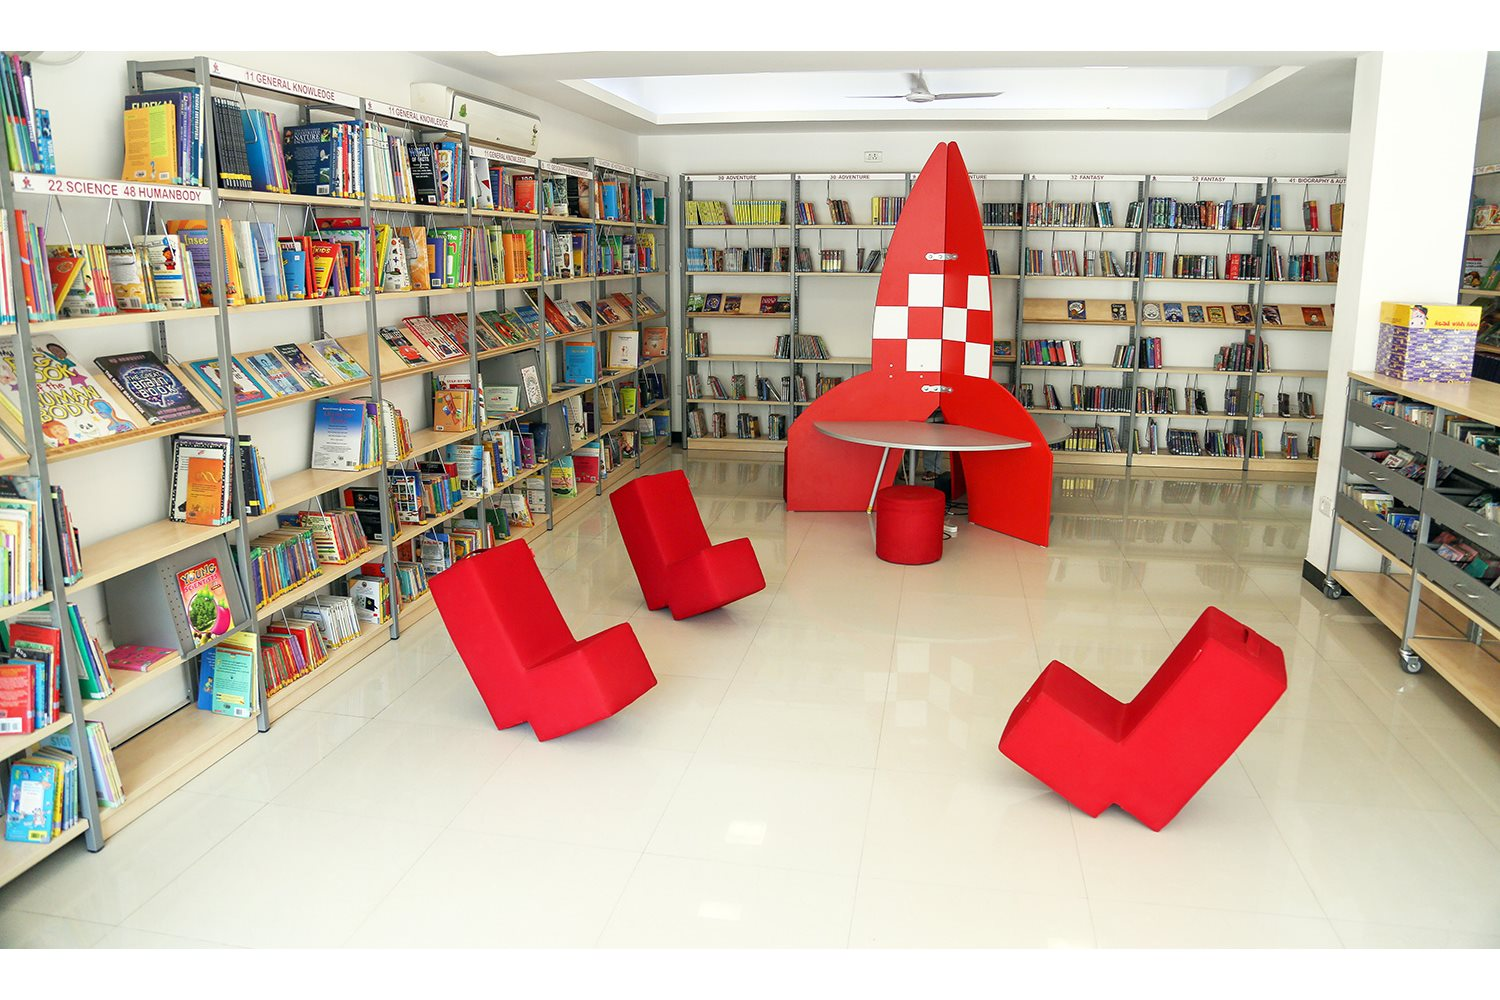 Library Interior Design Focus On Reading Skills In Chennai India